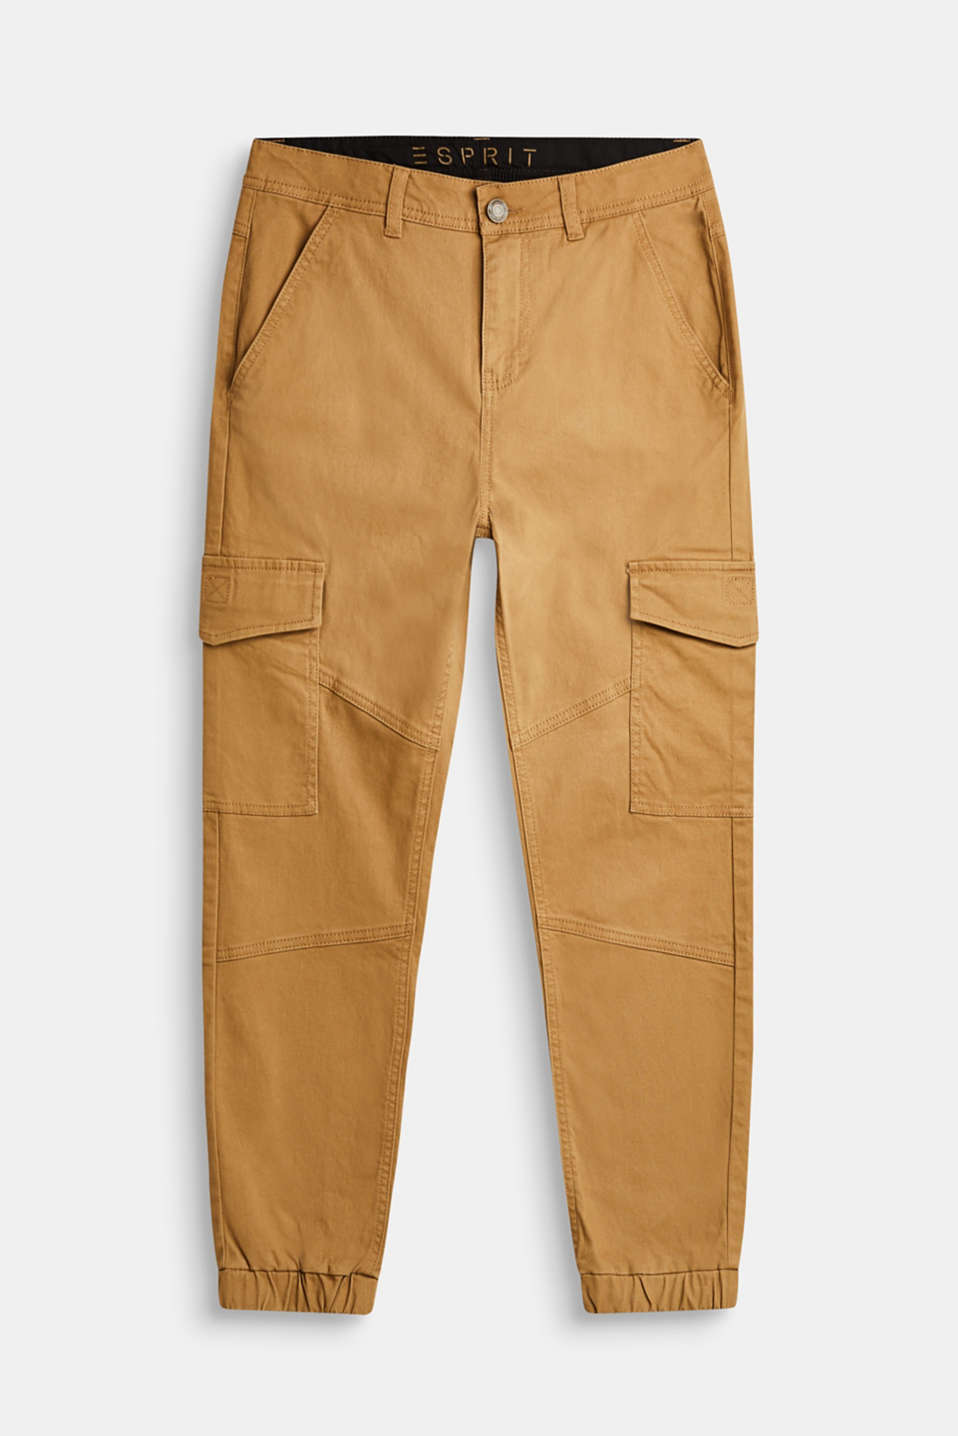 Esprit - Stretch cotton cargo trousers